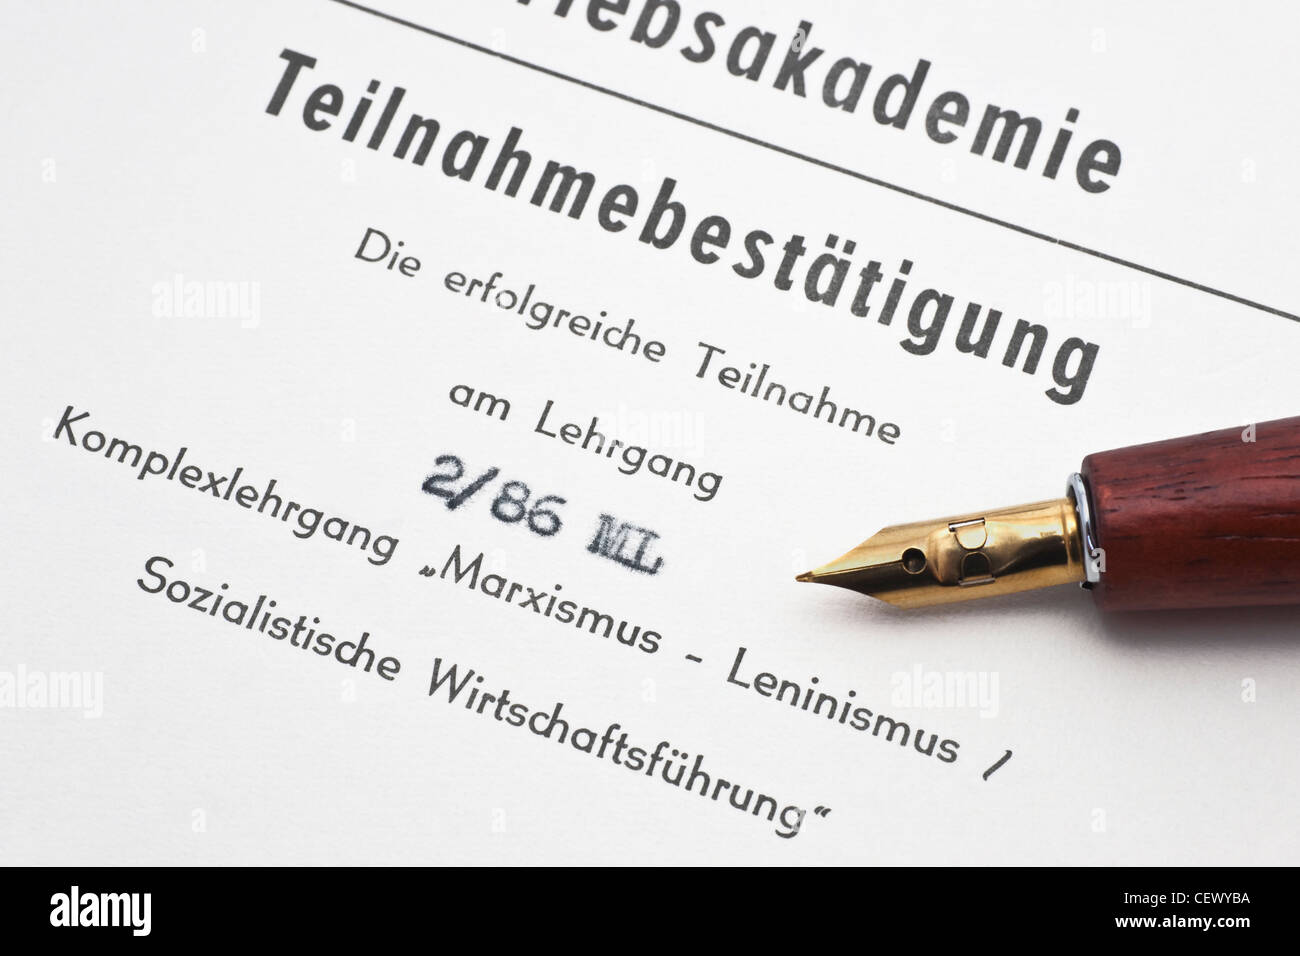 A confirmation of participation in a intricate seminar of Marxism-Leninism and socialist management German language. - Stock Image